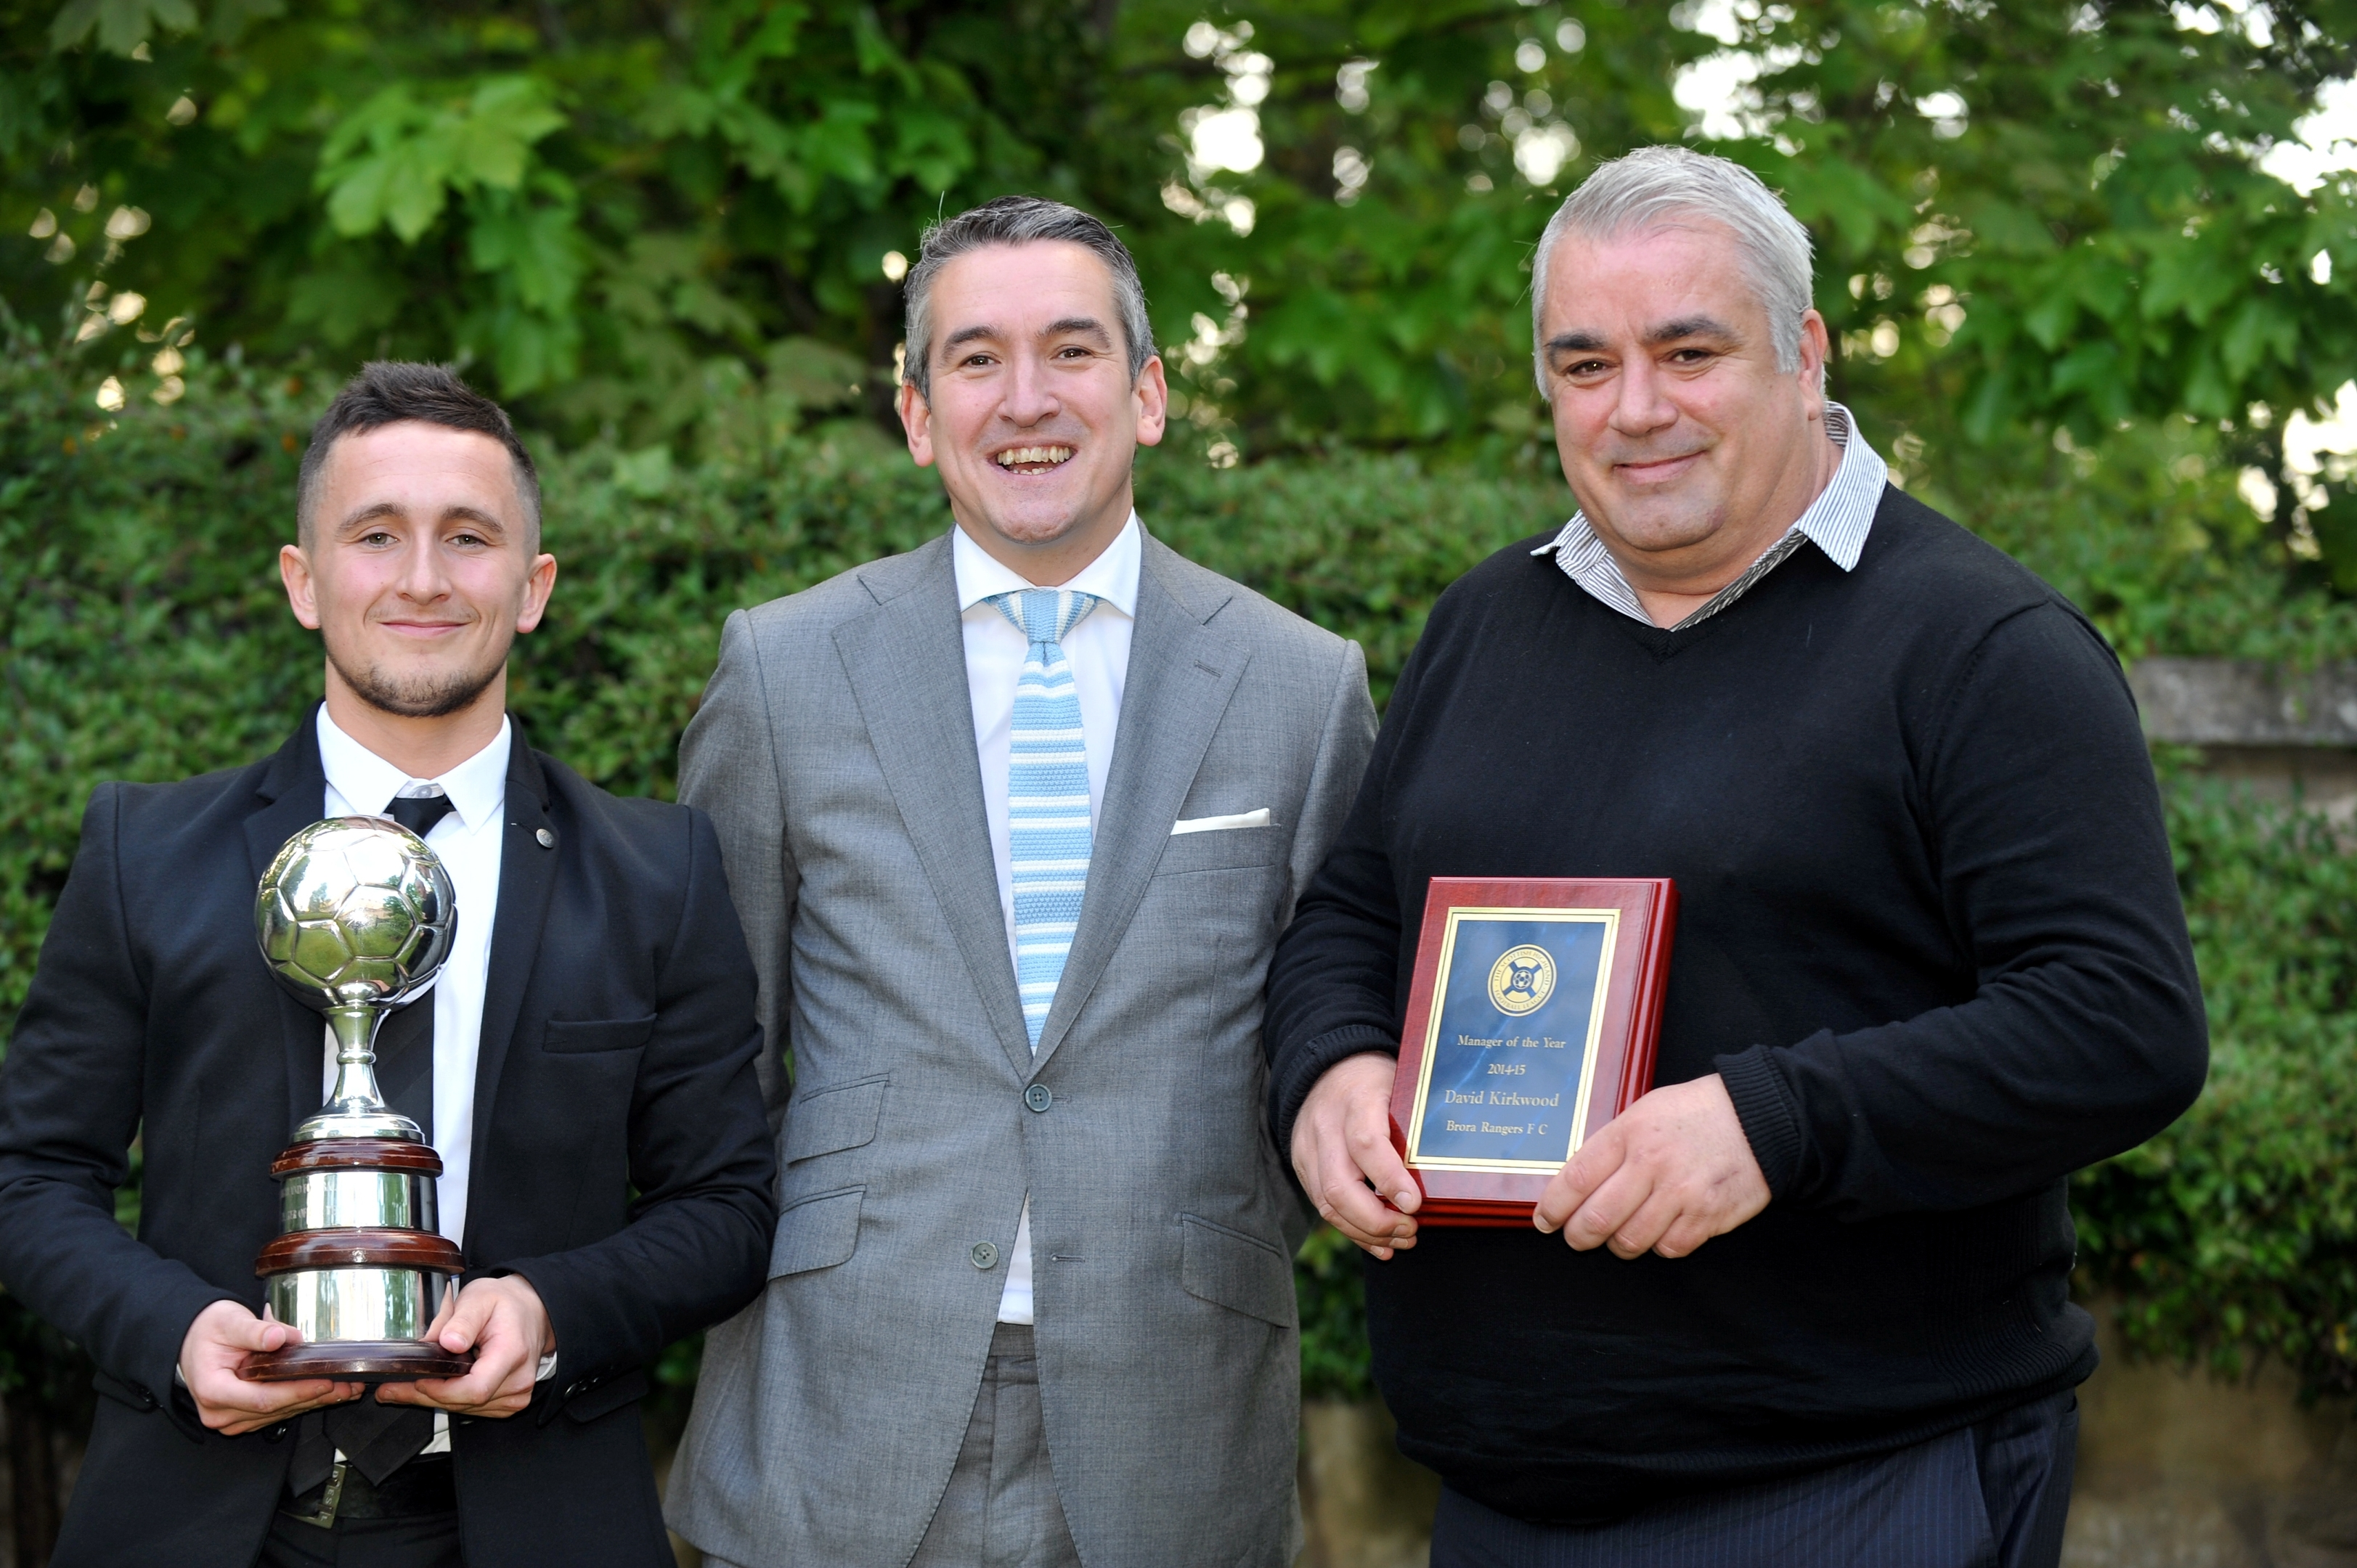 Andrew Greig and  Davie Kirkwood presented with their trophies by editor in chief, Damian Bates. Picture by Gordon Lennox